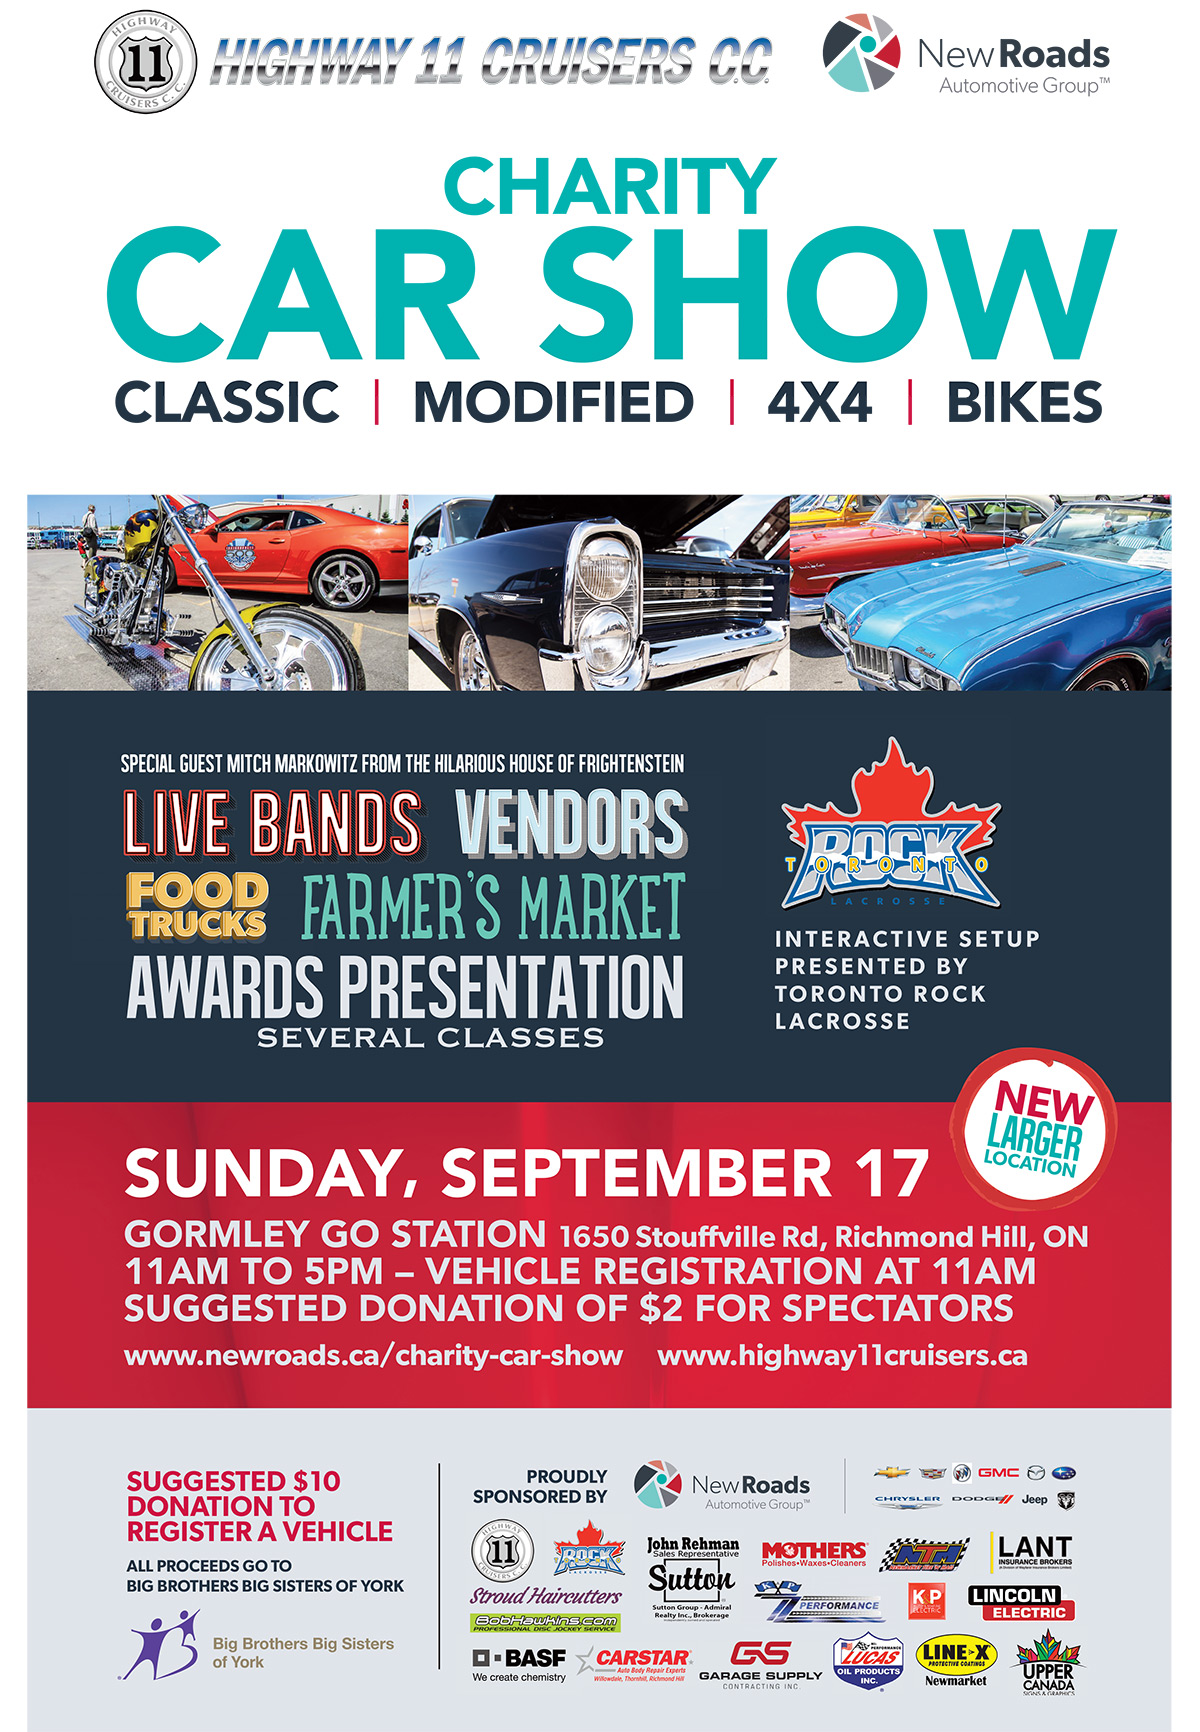 Charity Classic Car Show - Richmond Hill, Ontario